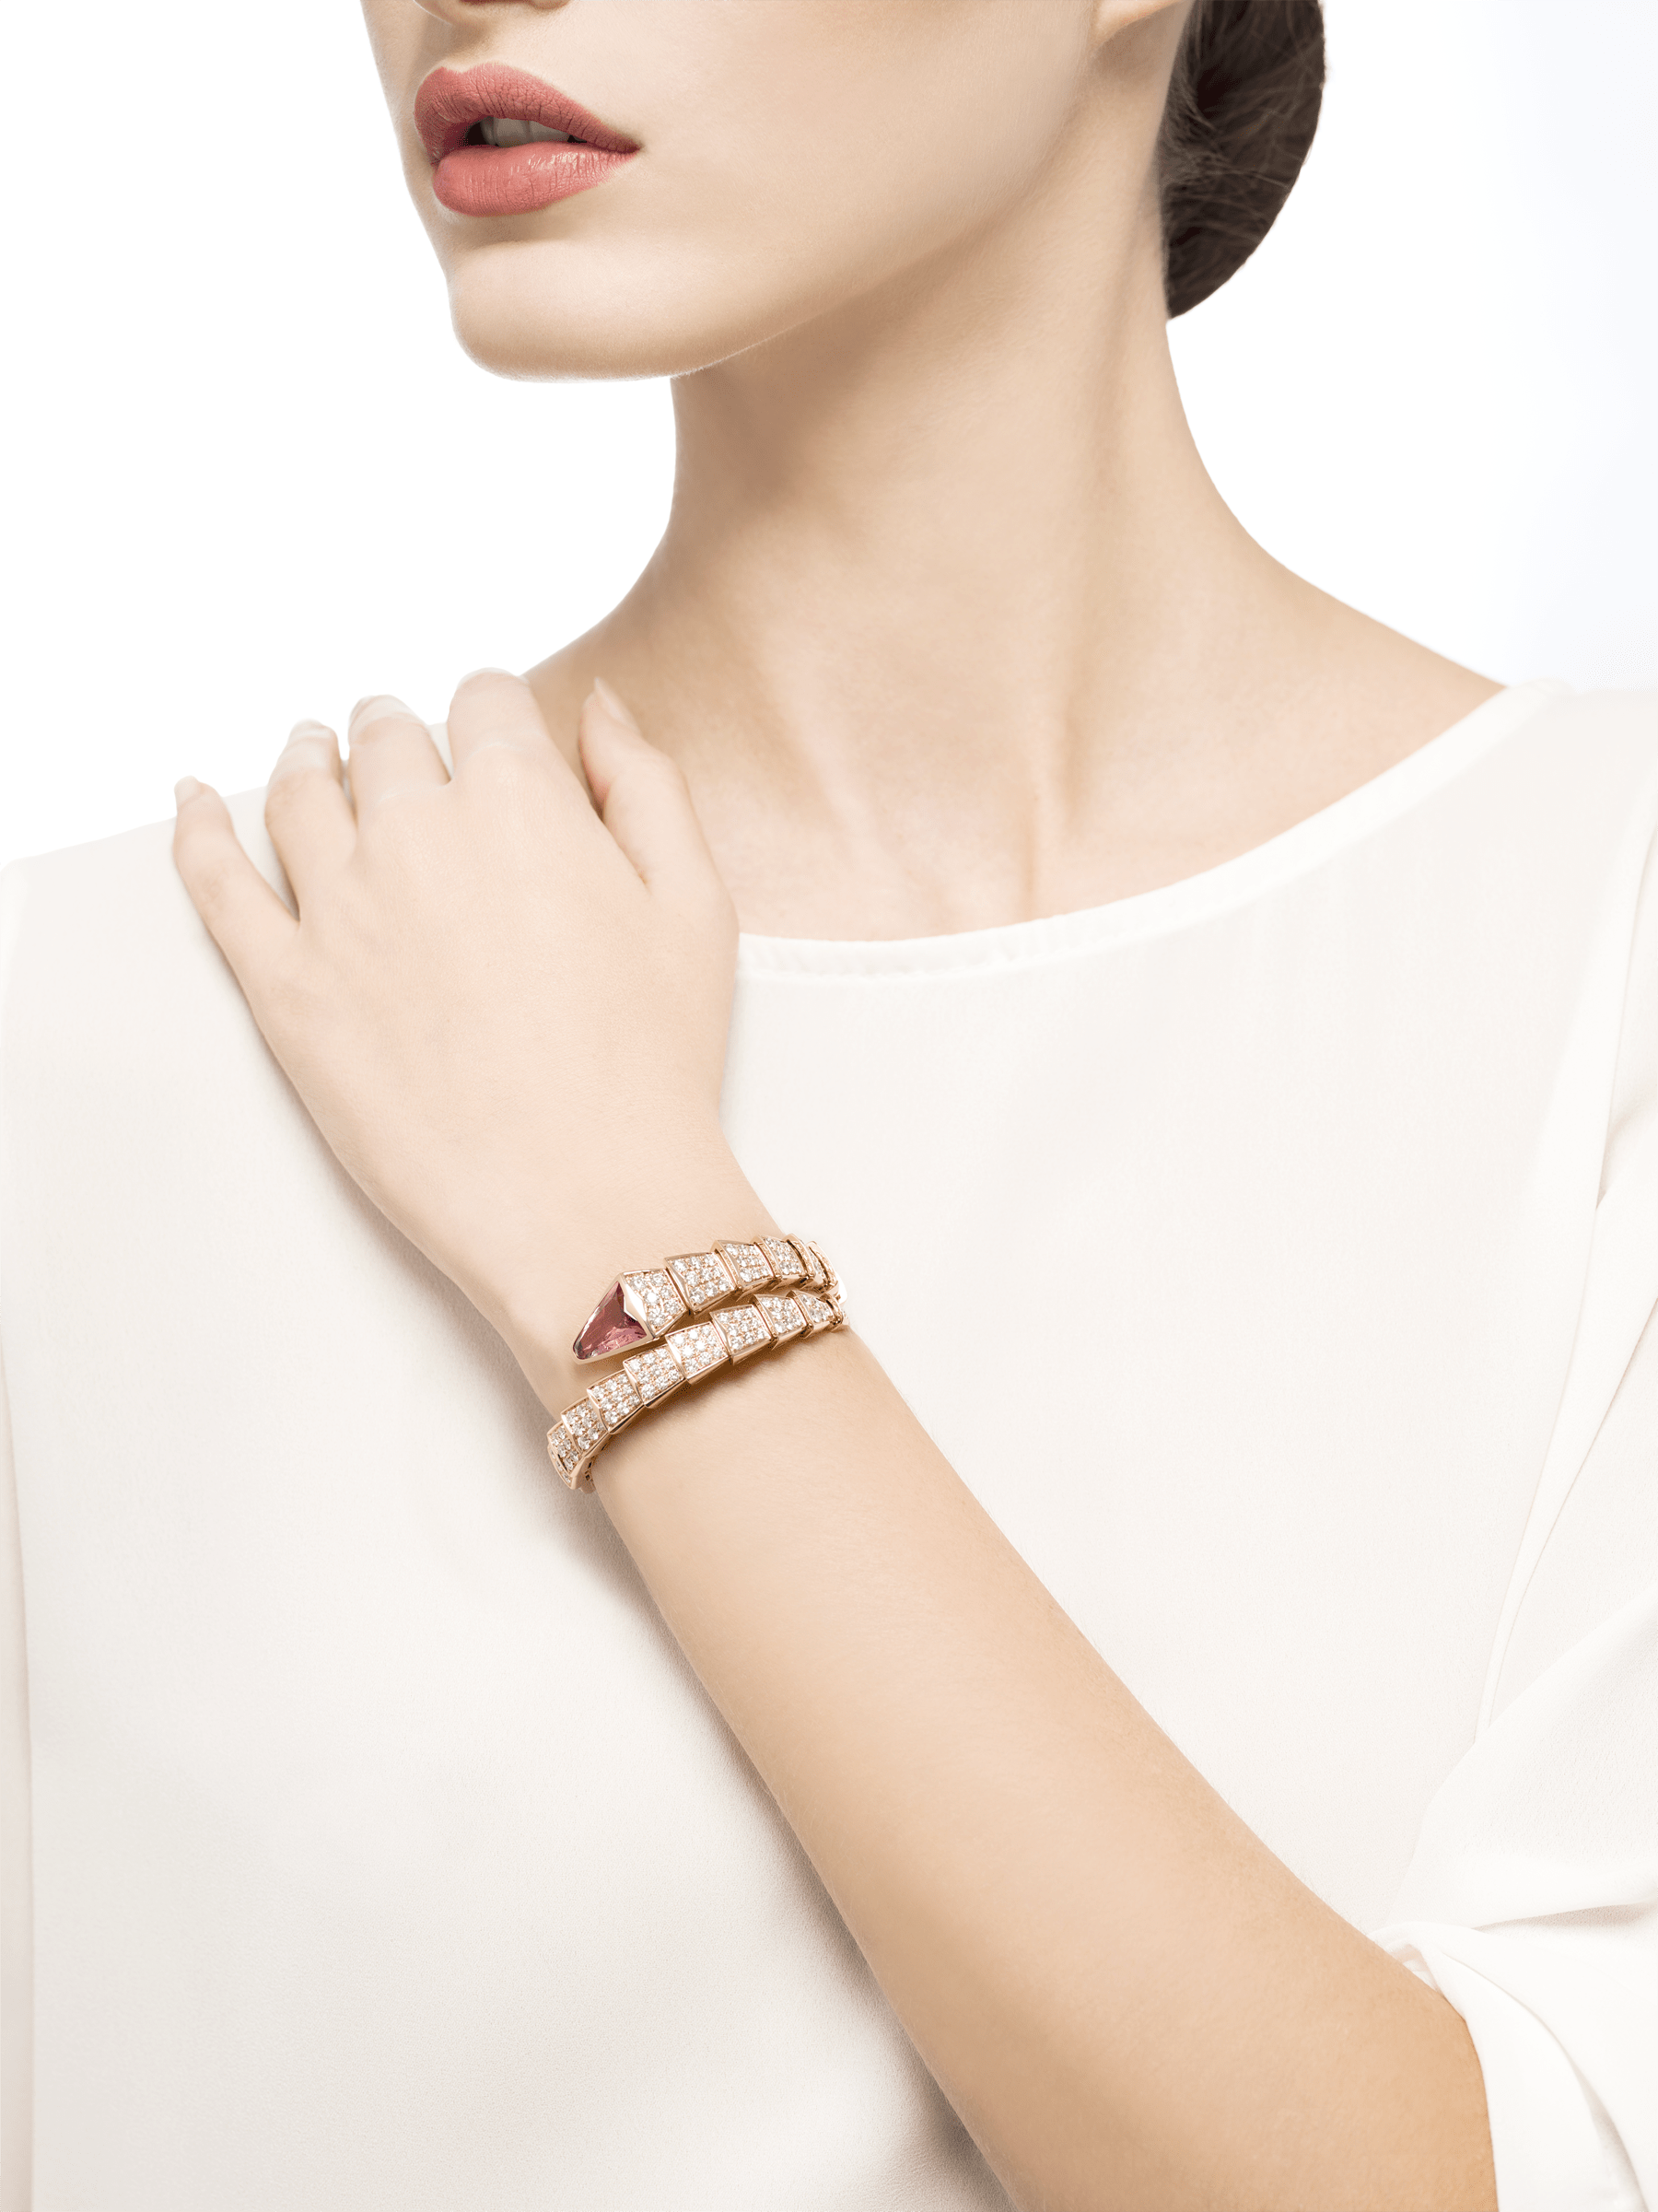 Serpenti one-coil bracelet in 18 kt rose gold, set with full pavé diamonds and a rubellite on the head. BR856126 image 4